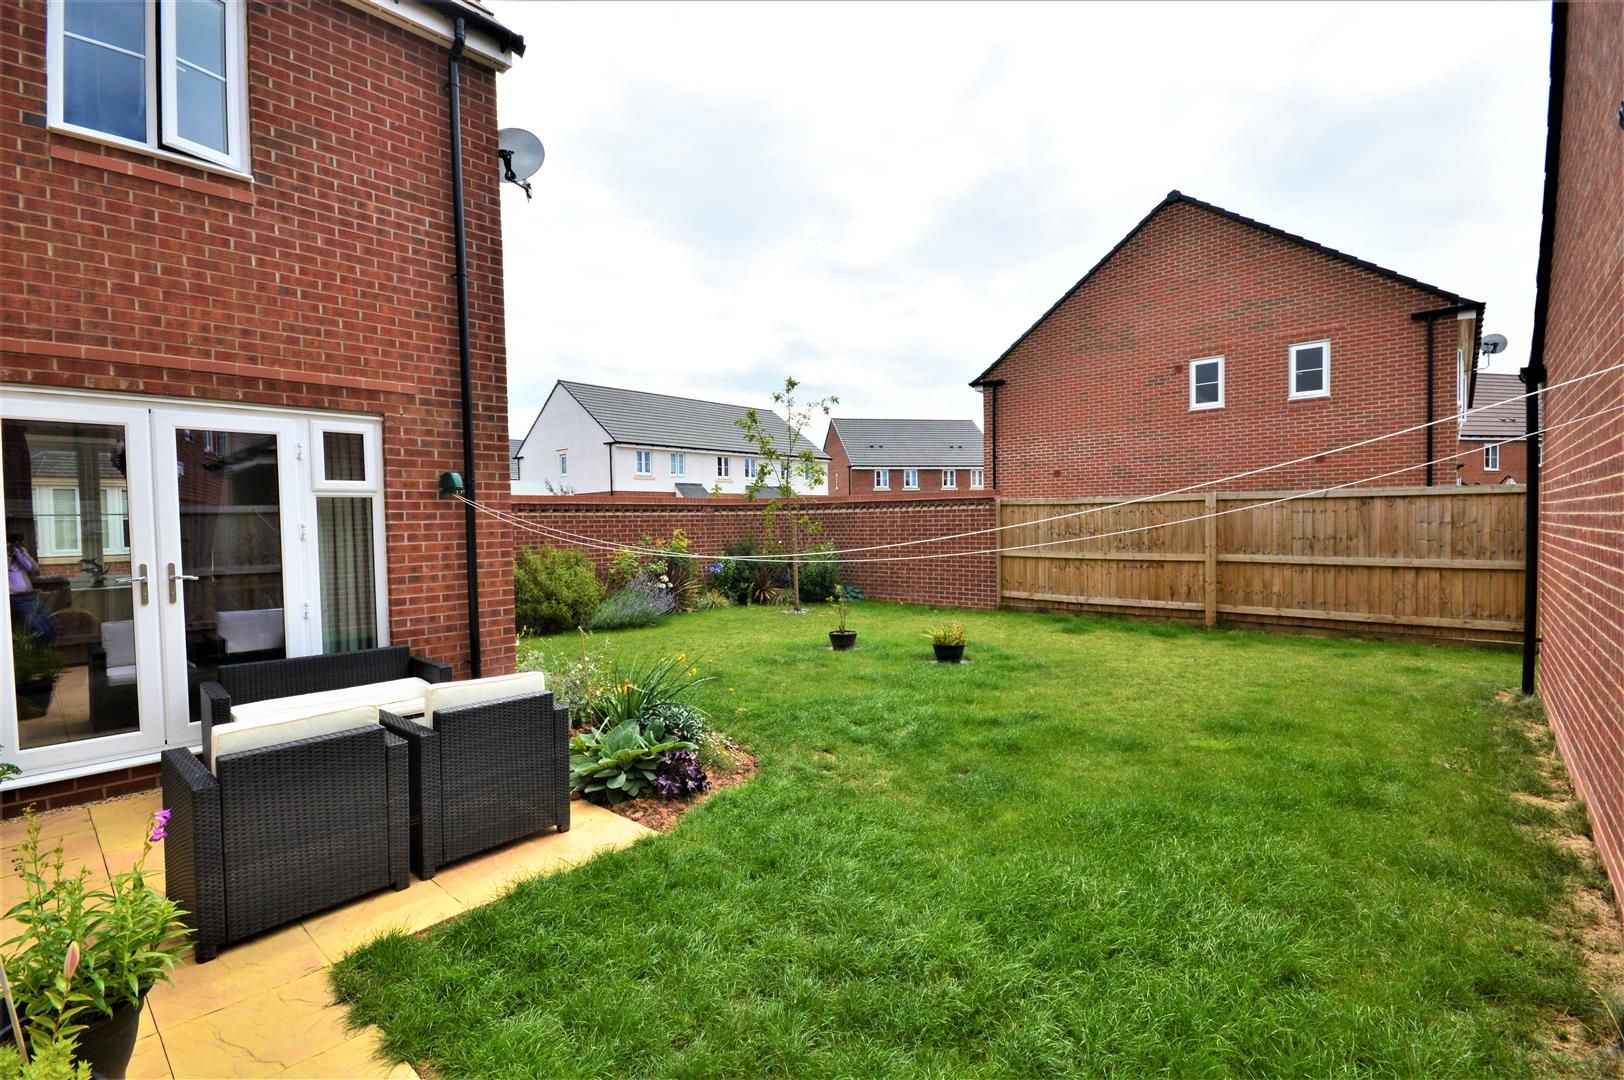 4 bed detached for sale in Whitestone 16